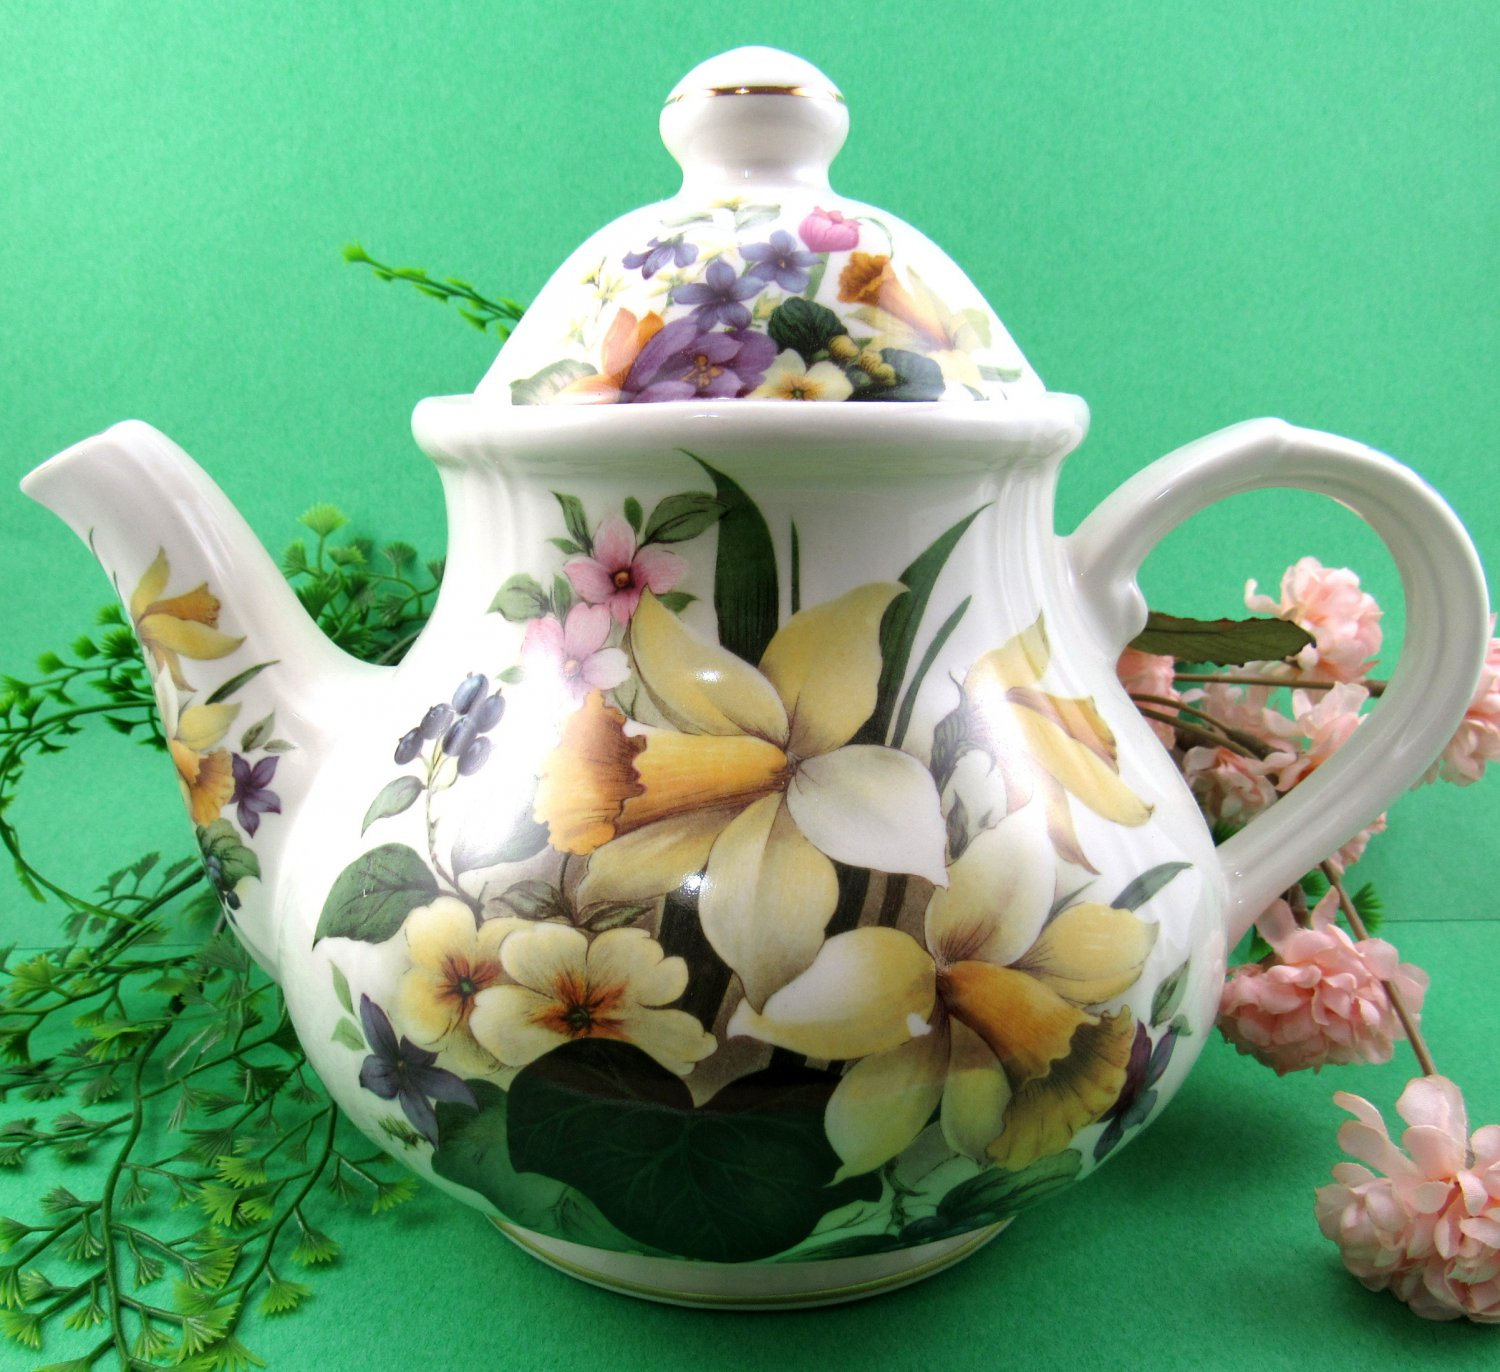 Sadler Teapot Made In England 9 1/2 Inches Daffodils and Spring Flowers Gold Trim Large